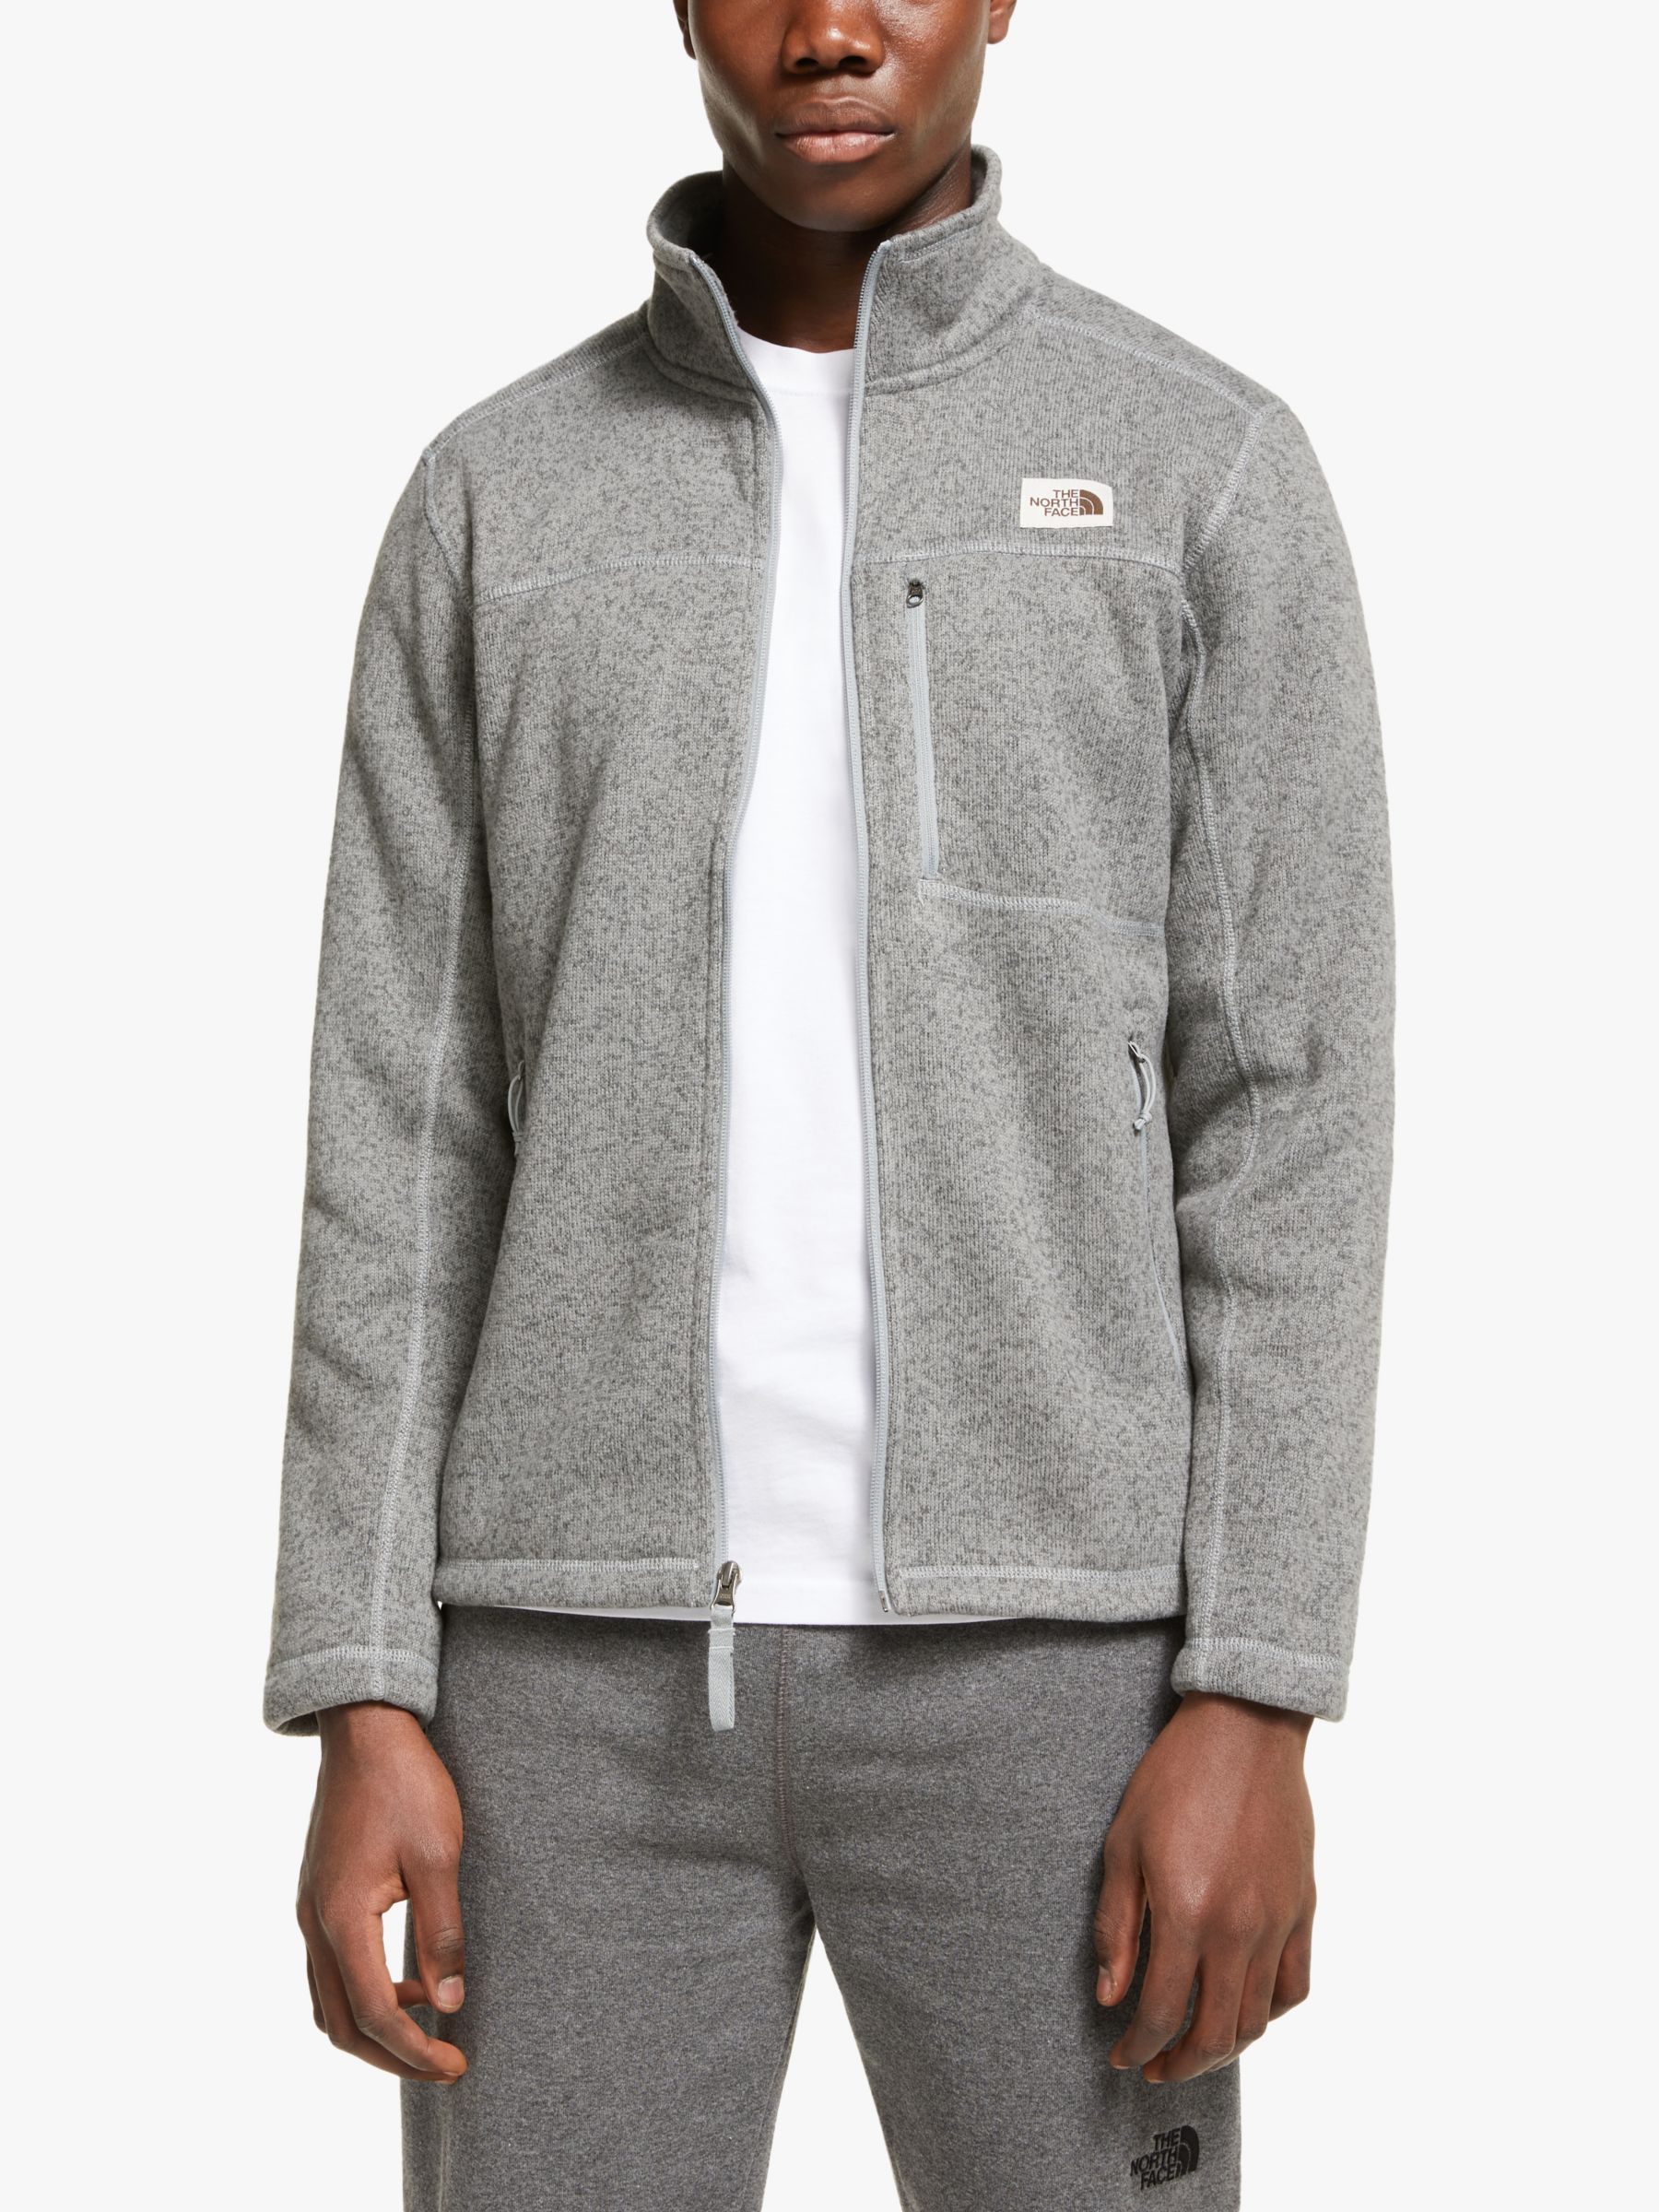 The North Face The North Face Gordon Lyons Full Zip Men's Fleece Jacket, TNF Medium Grey Heather